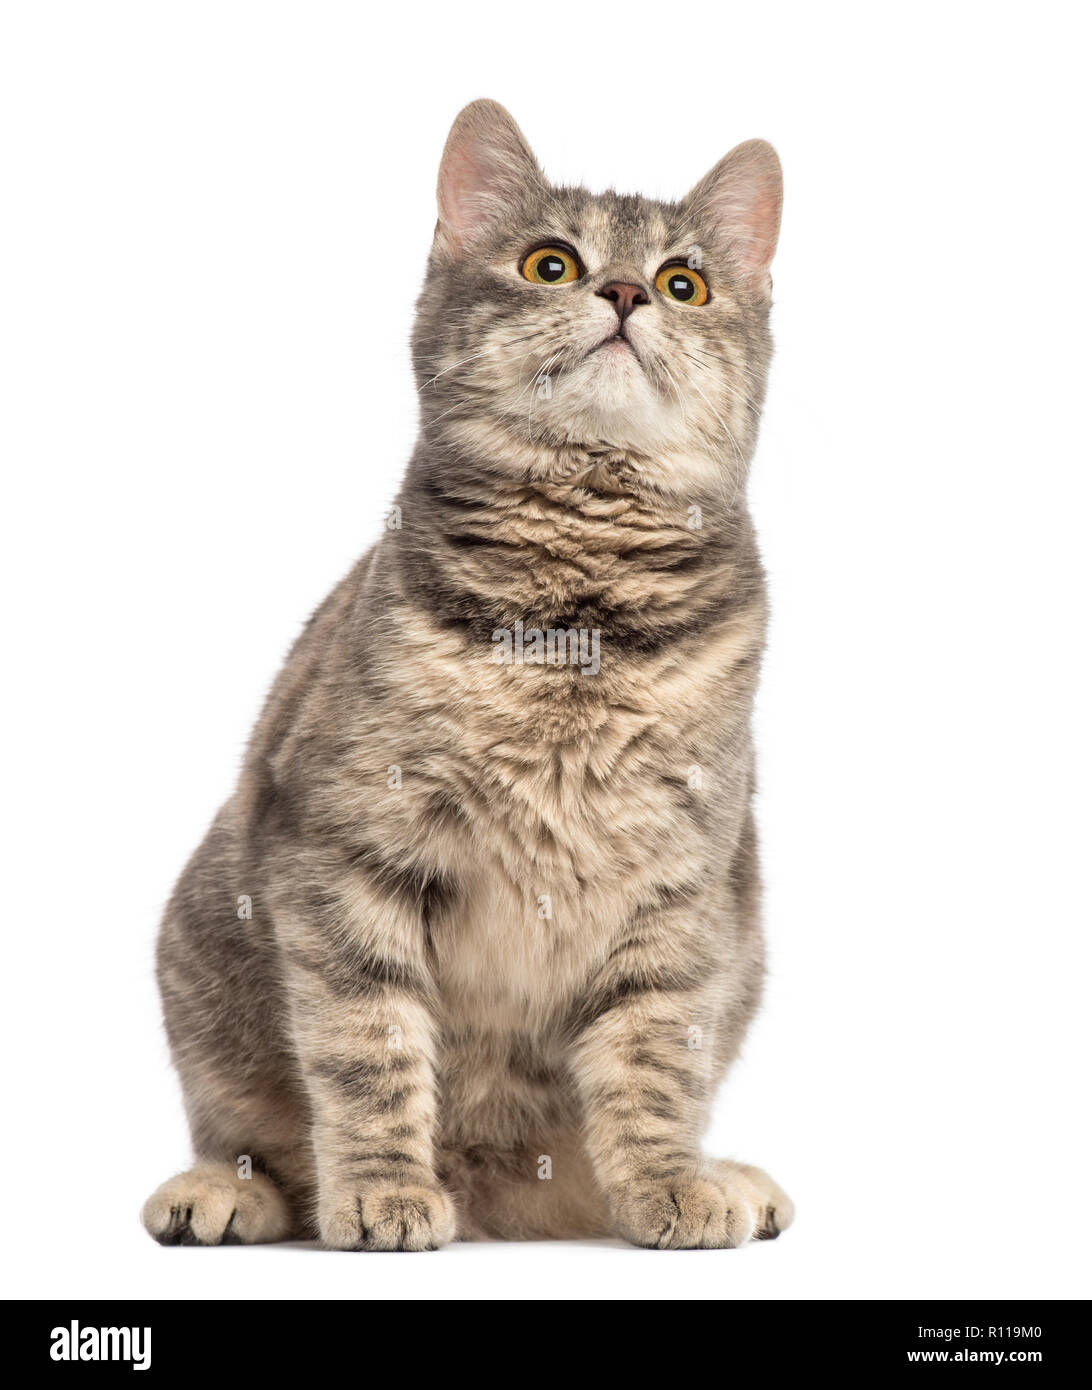 European Shorthair (6 months old) - Stock Image